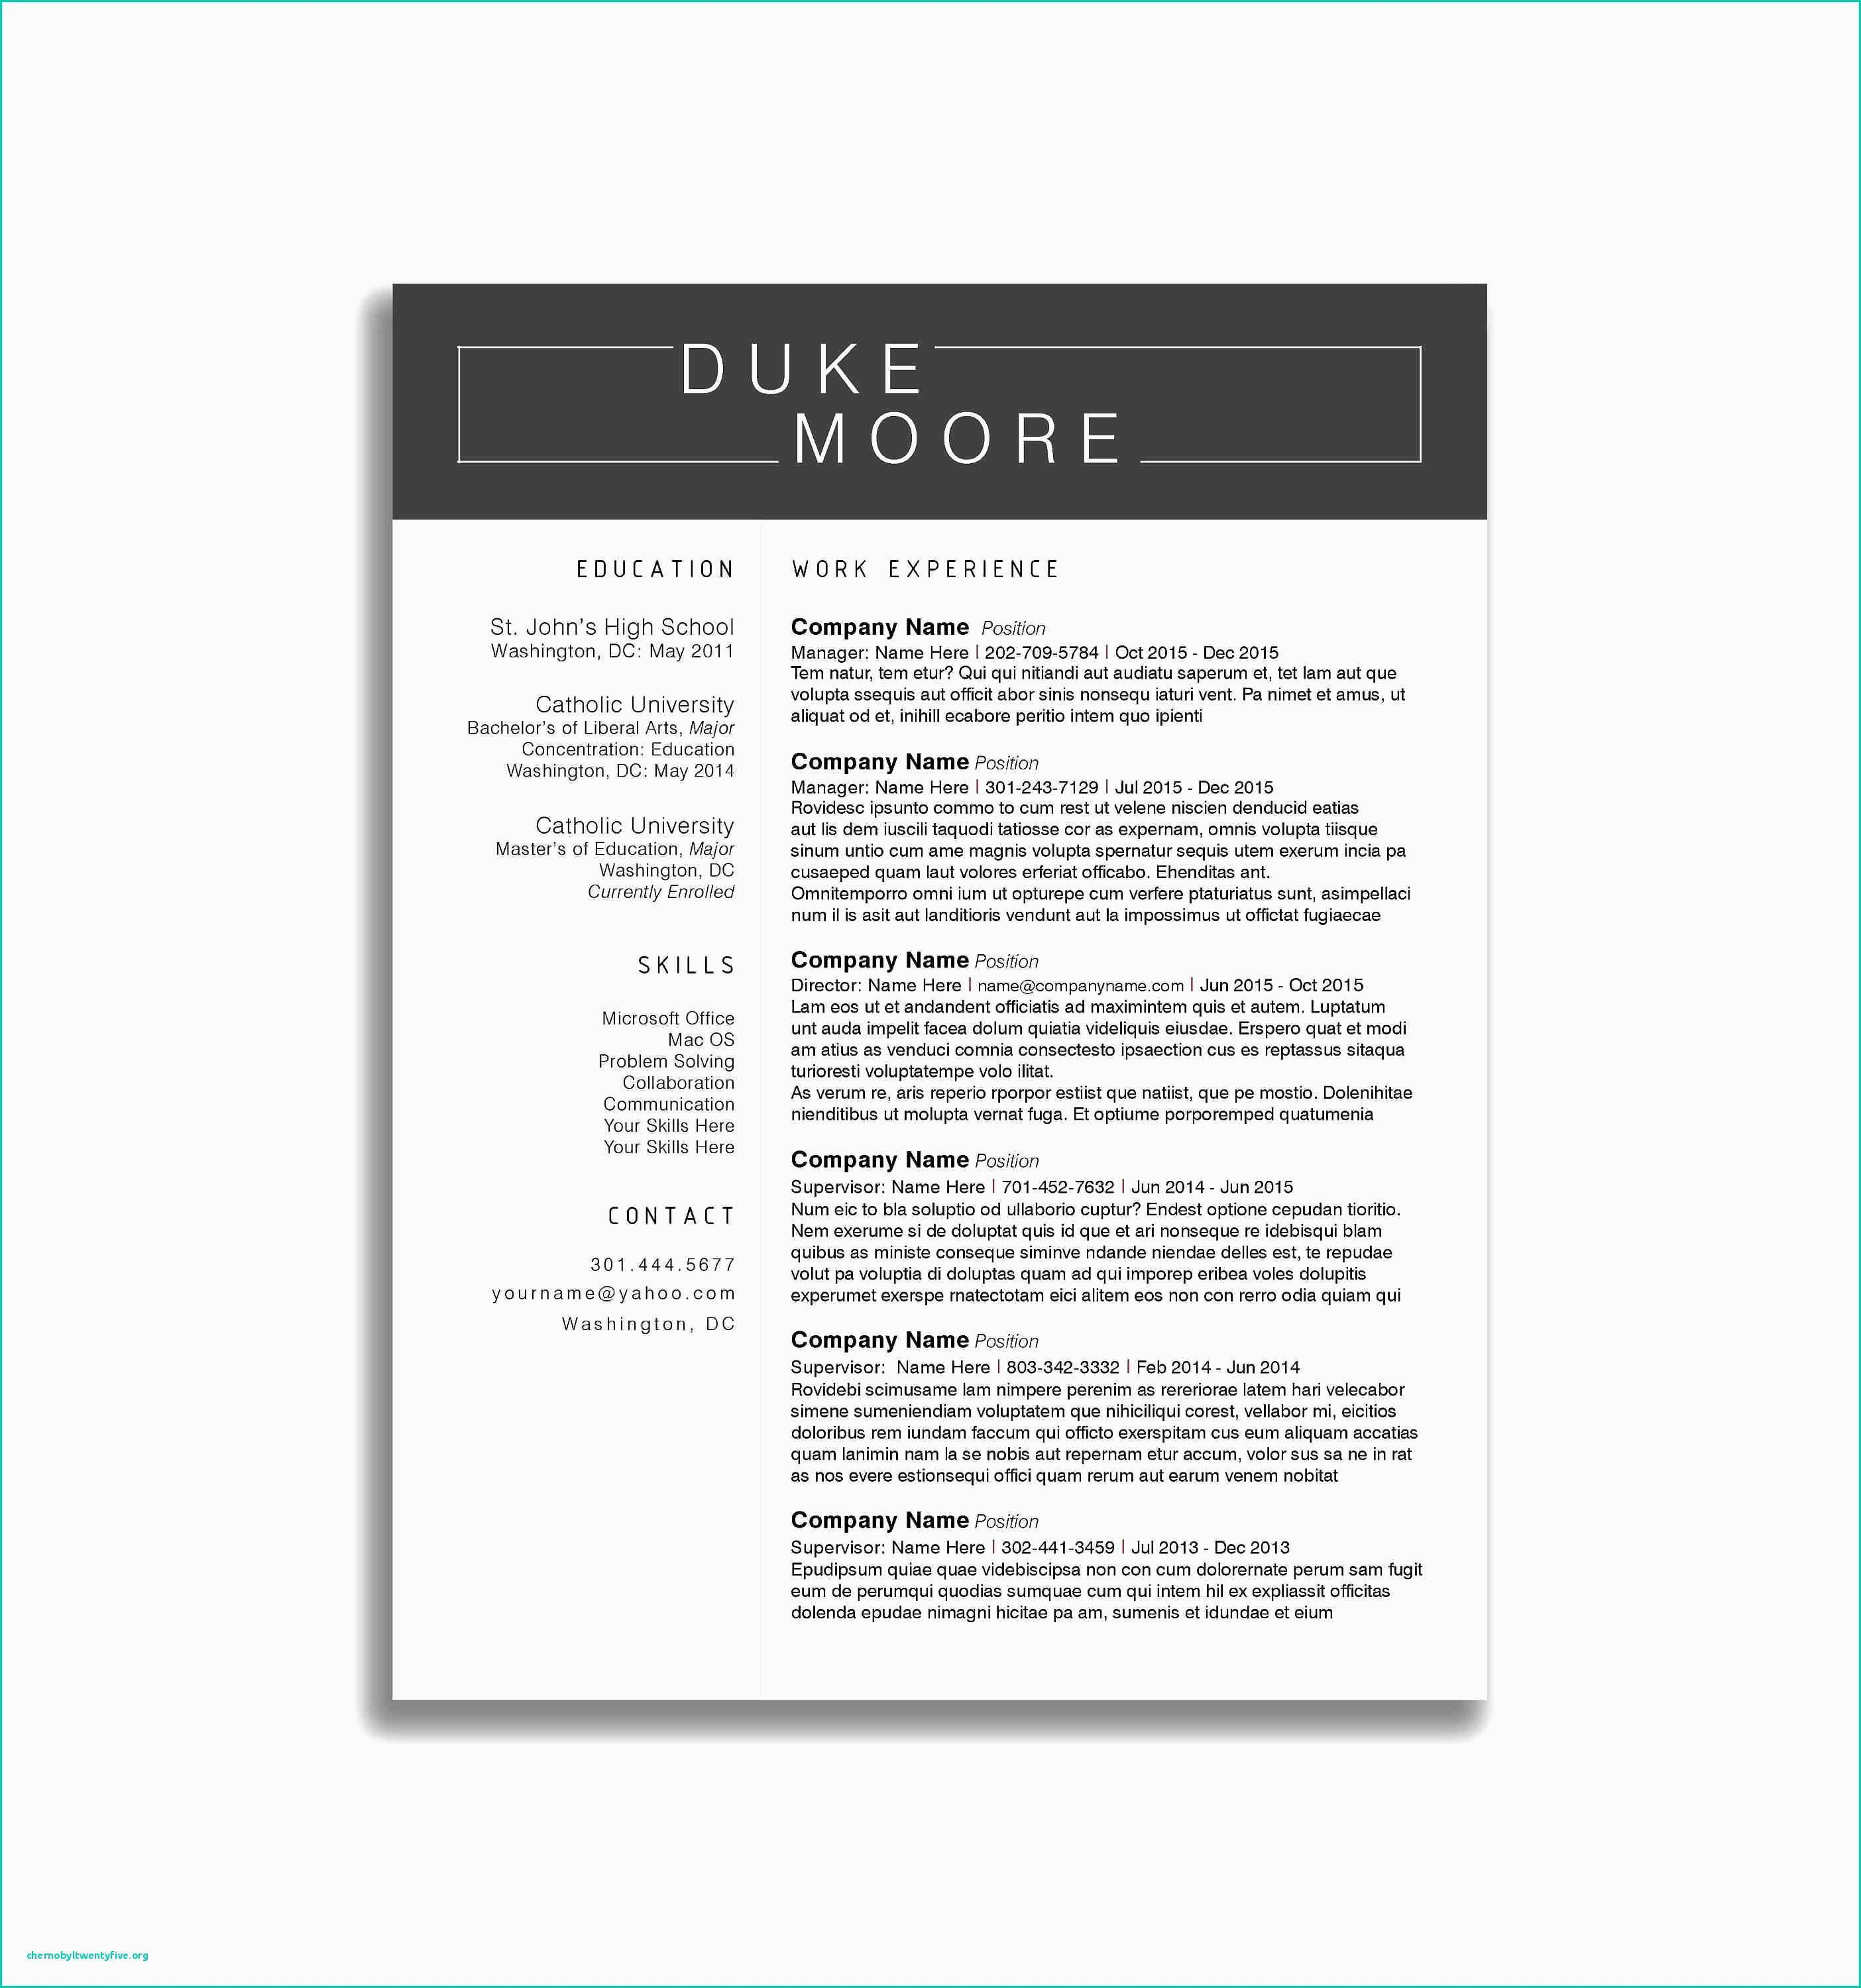 Shoe Store Manager Resume - Resumes Store Manager Job Description Resume 22 Shoe Store Manager